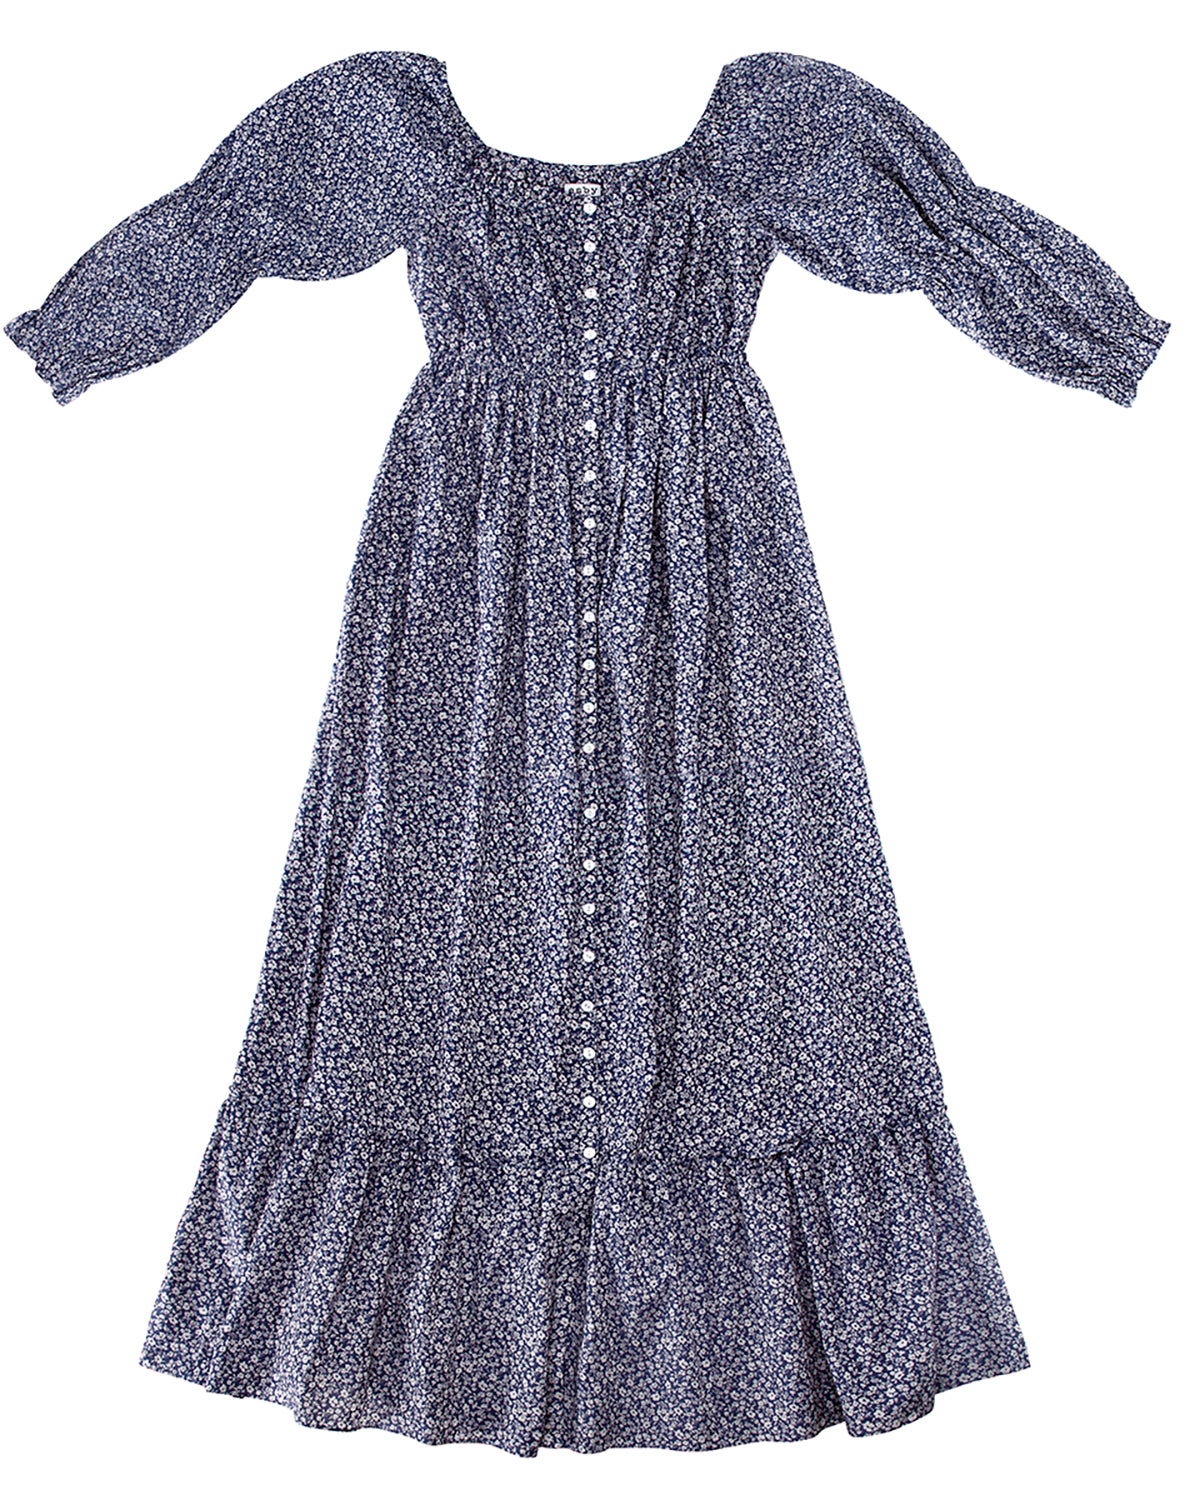 CATERINA DRESS - DENIM FLORAL - PREORDER